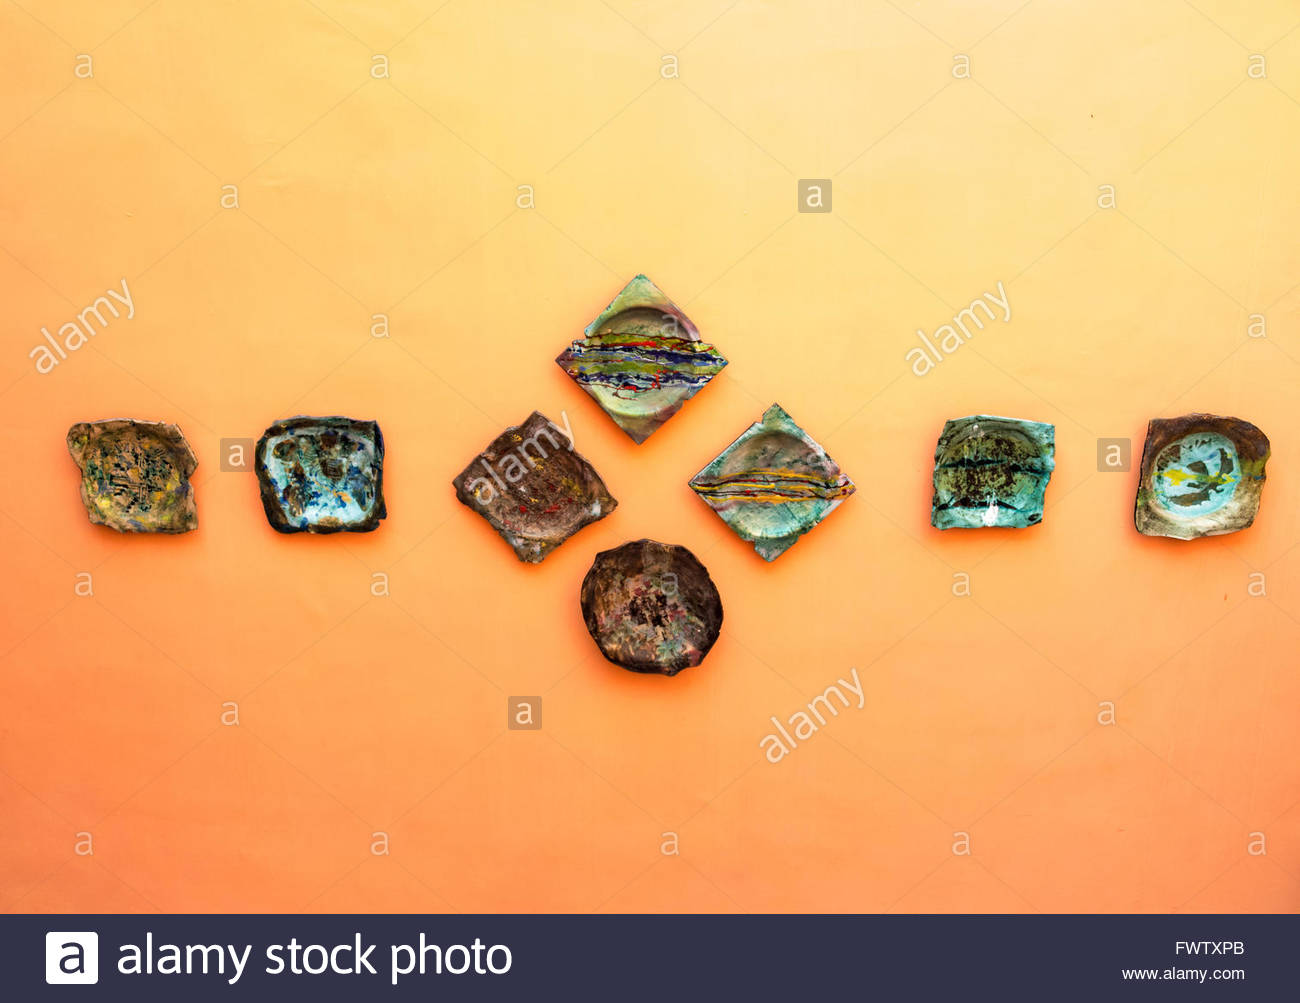 Decorative Wall Plates Stock Photos & Decorative Wall Plates Stock ...